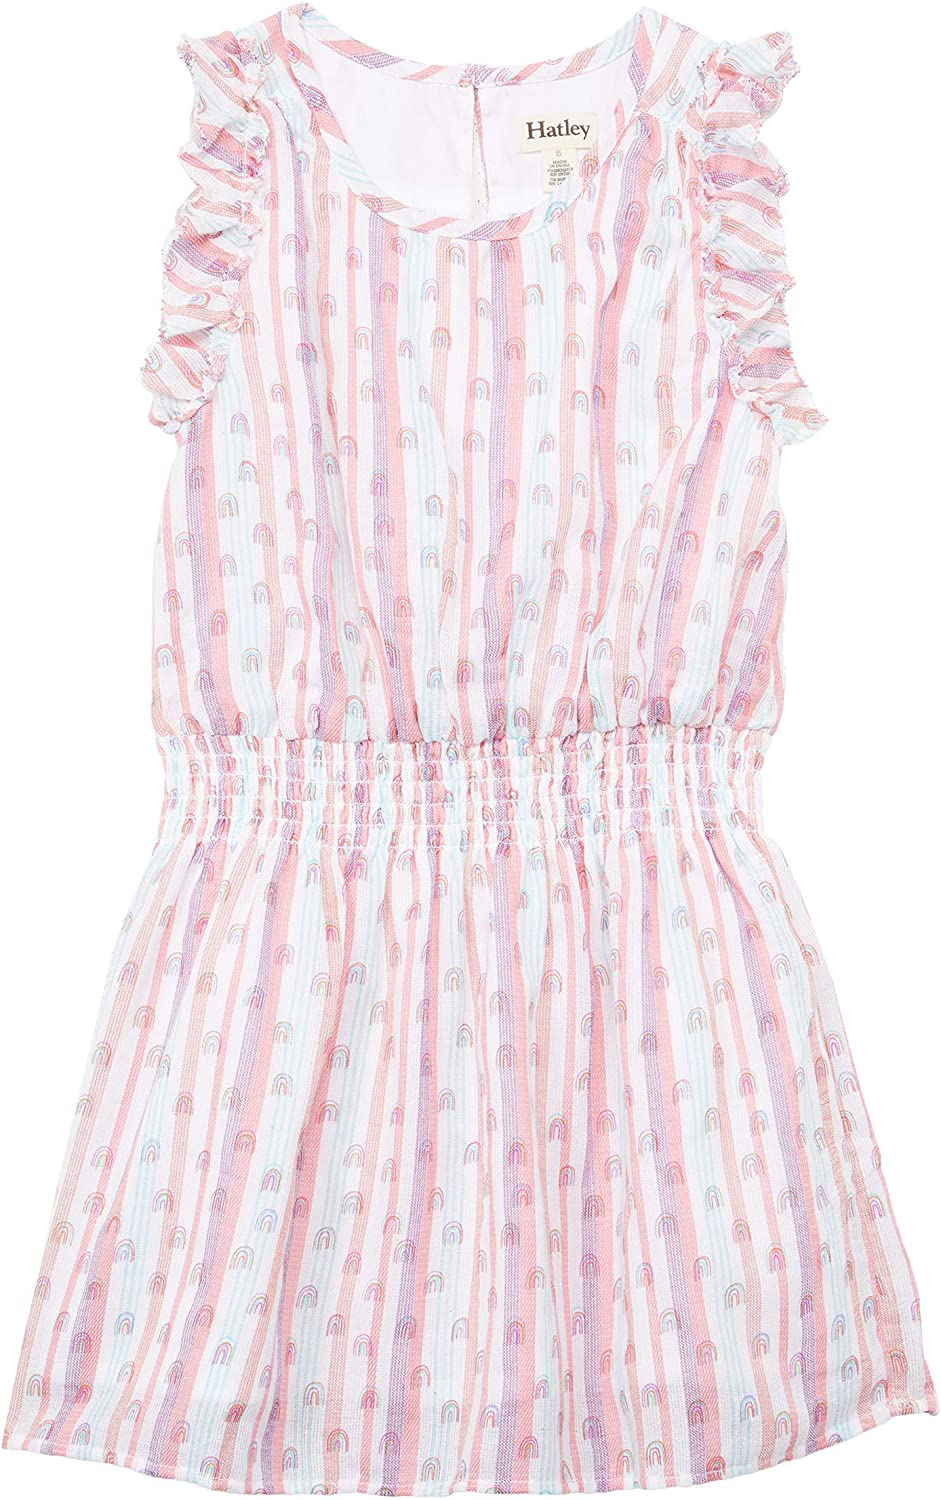 Hatley Girl's Candy Stripes Rainbows Little Toddler Dress Choice Direct sale of manufacturer Play